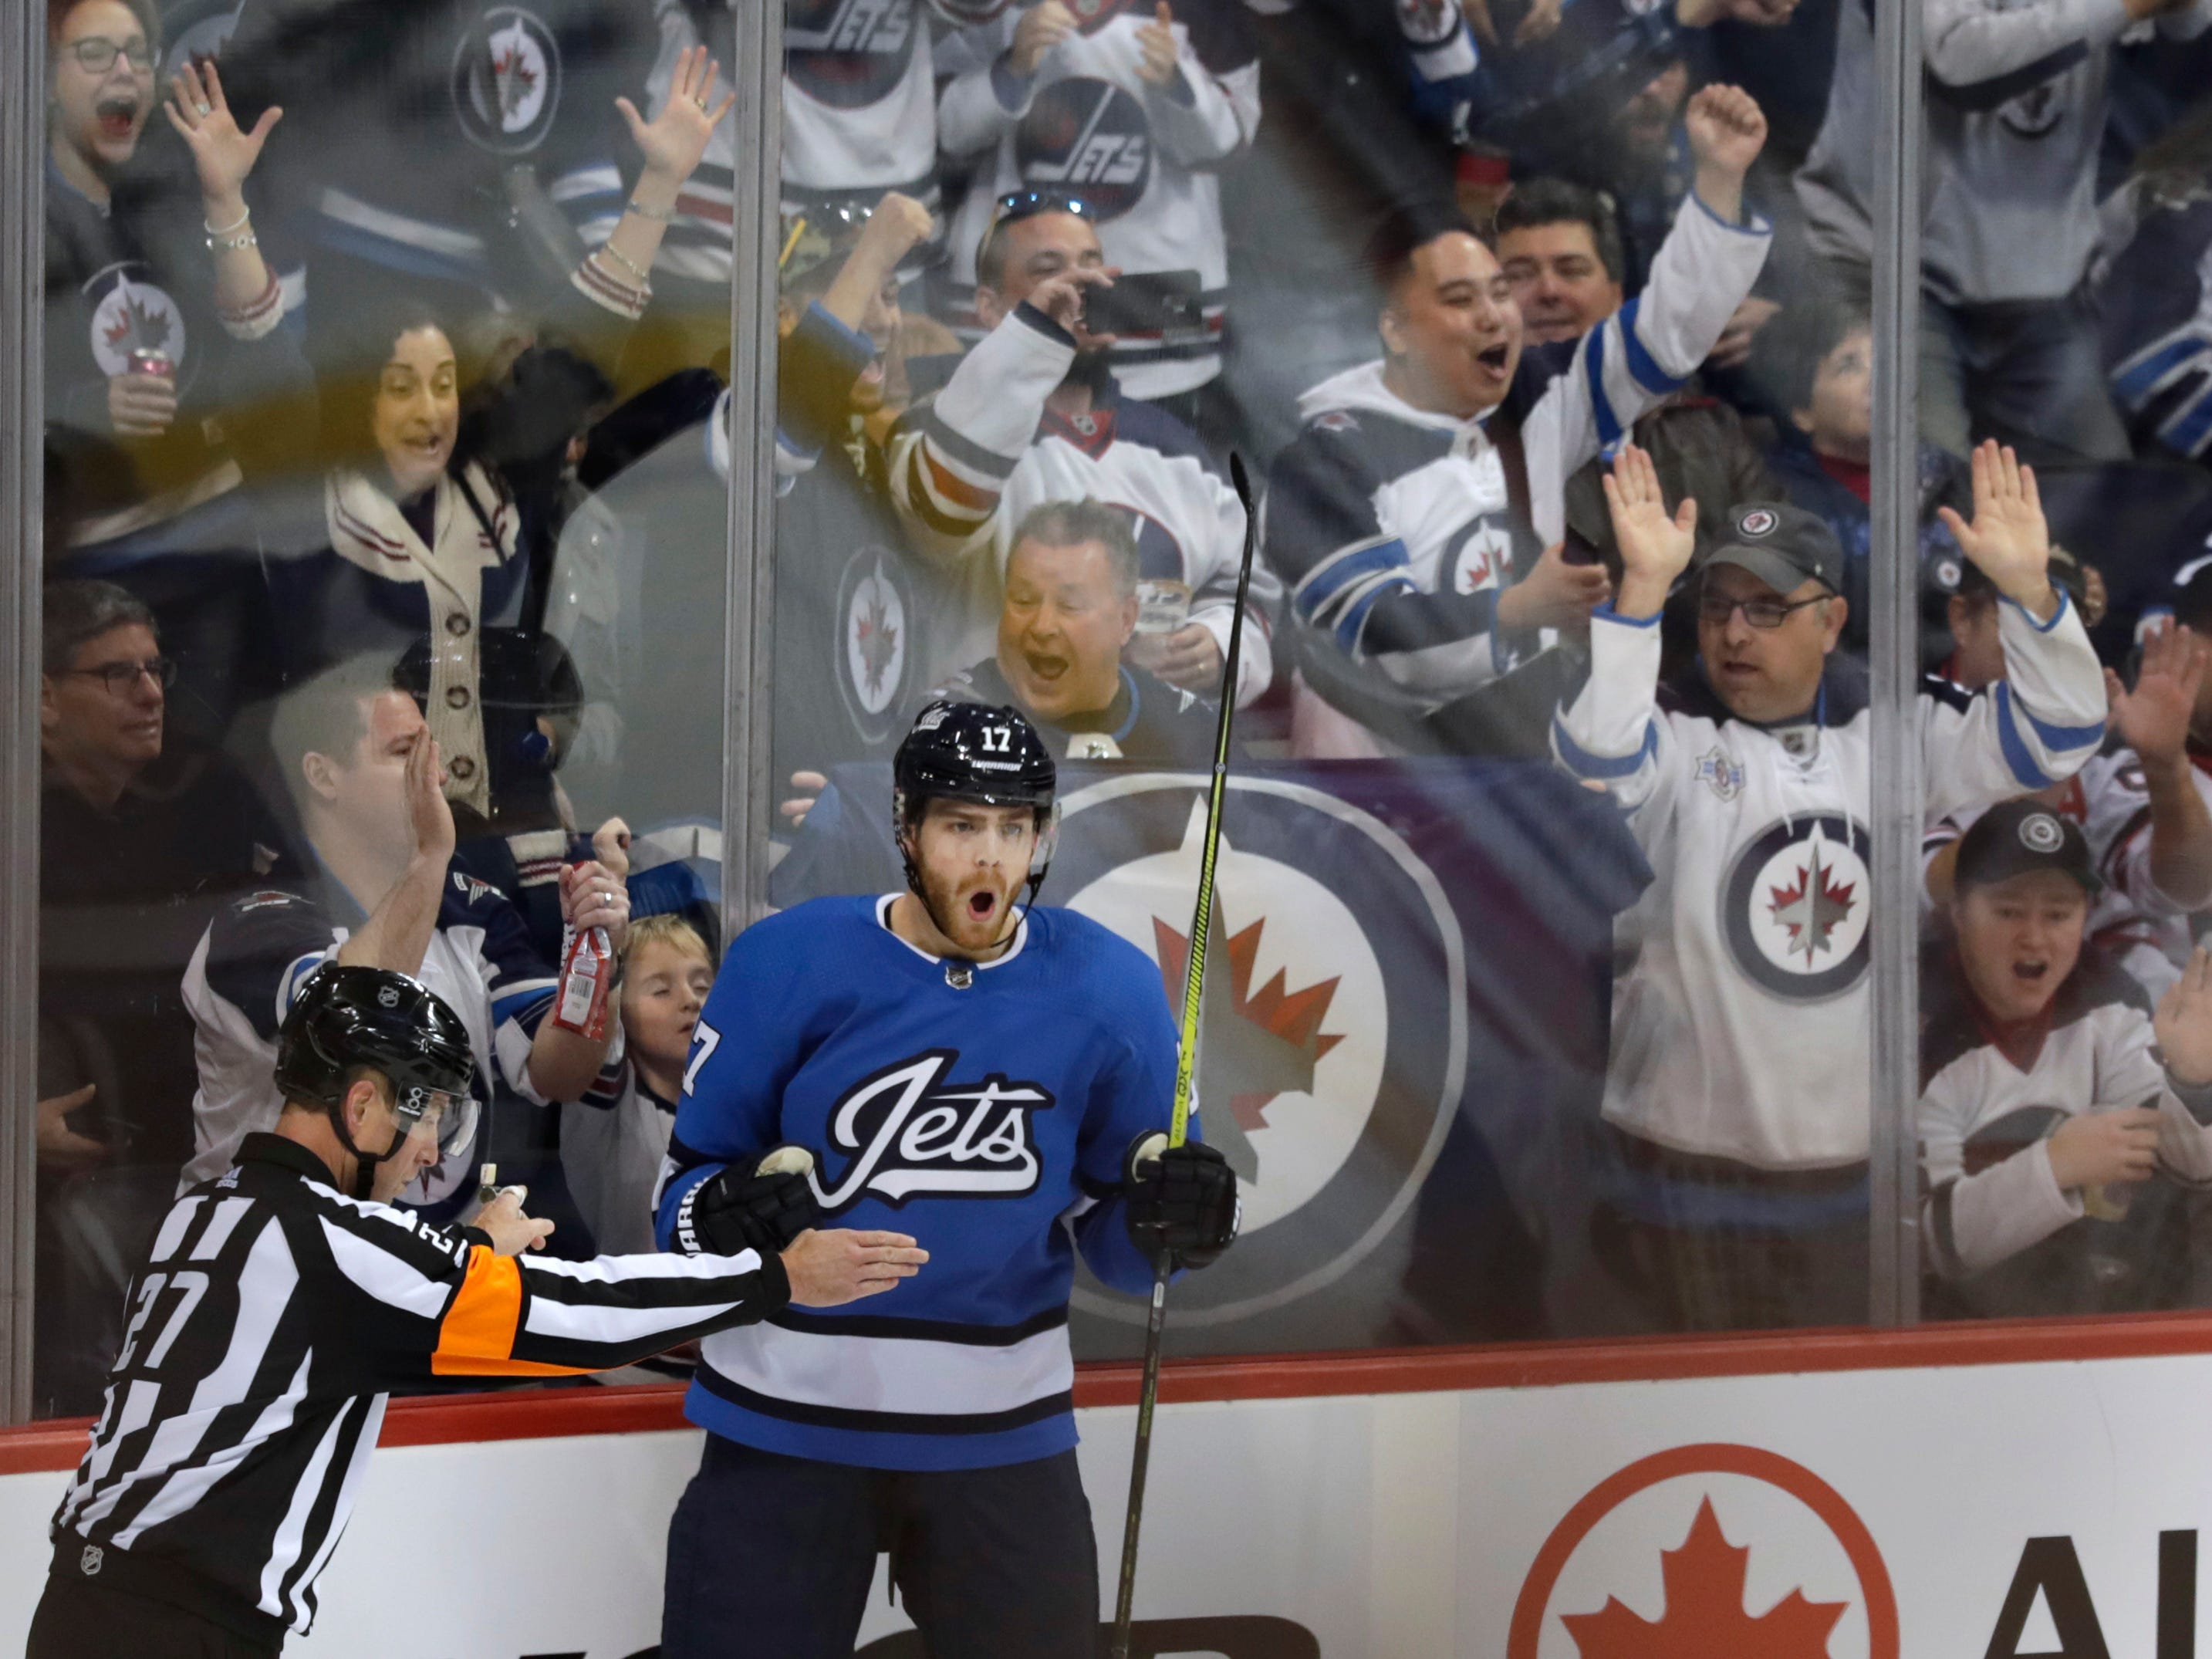 Oct 20, 2018; Winnipeg, Manitoba, CAN; Winnipeg Jets center Adam Lowry (17) celebrates his first period goal against Arizona Coyotes at Bell MTS Place. Mandatory Credit: James Carey Lauder-USA TODAY Sports